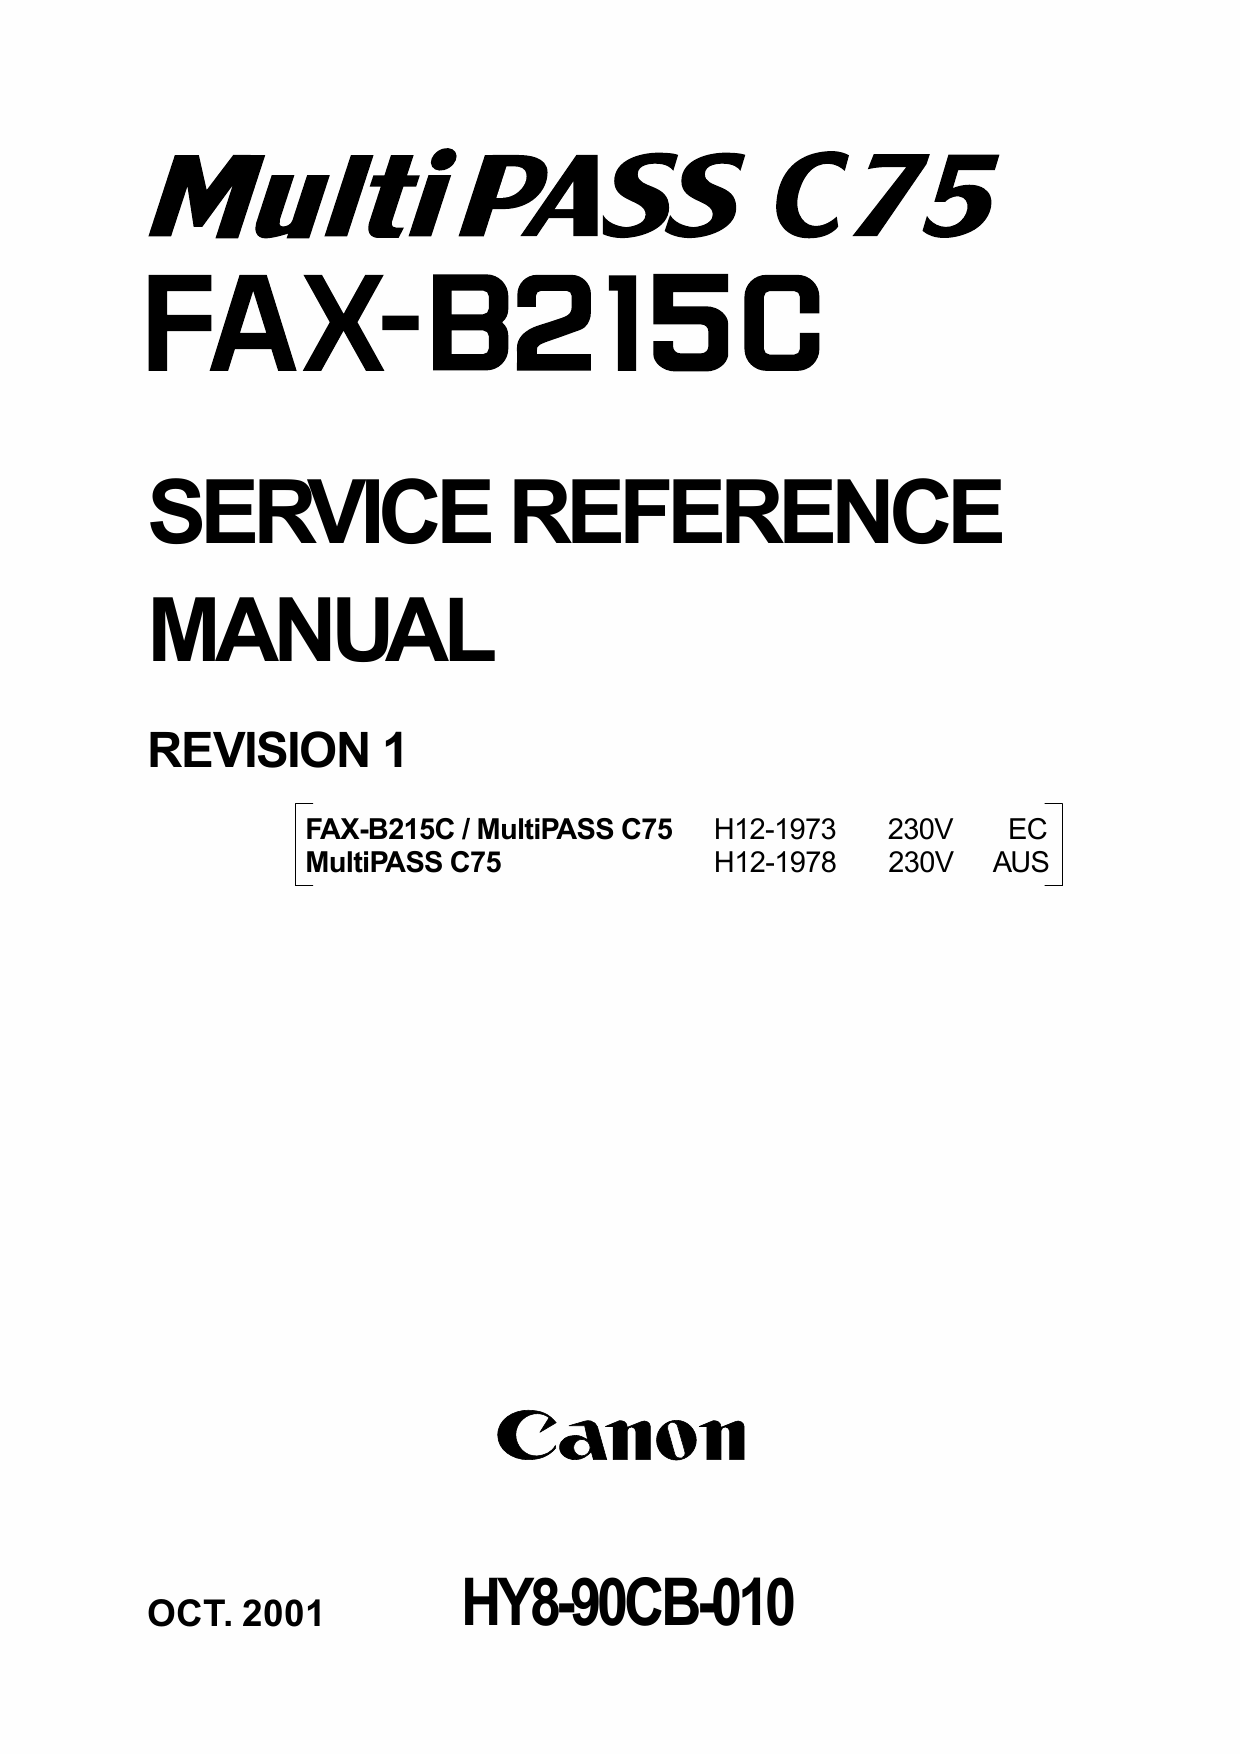 Canon MultiPASS MP-C75 FAX-B215C Parts and Service Manual-1